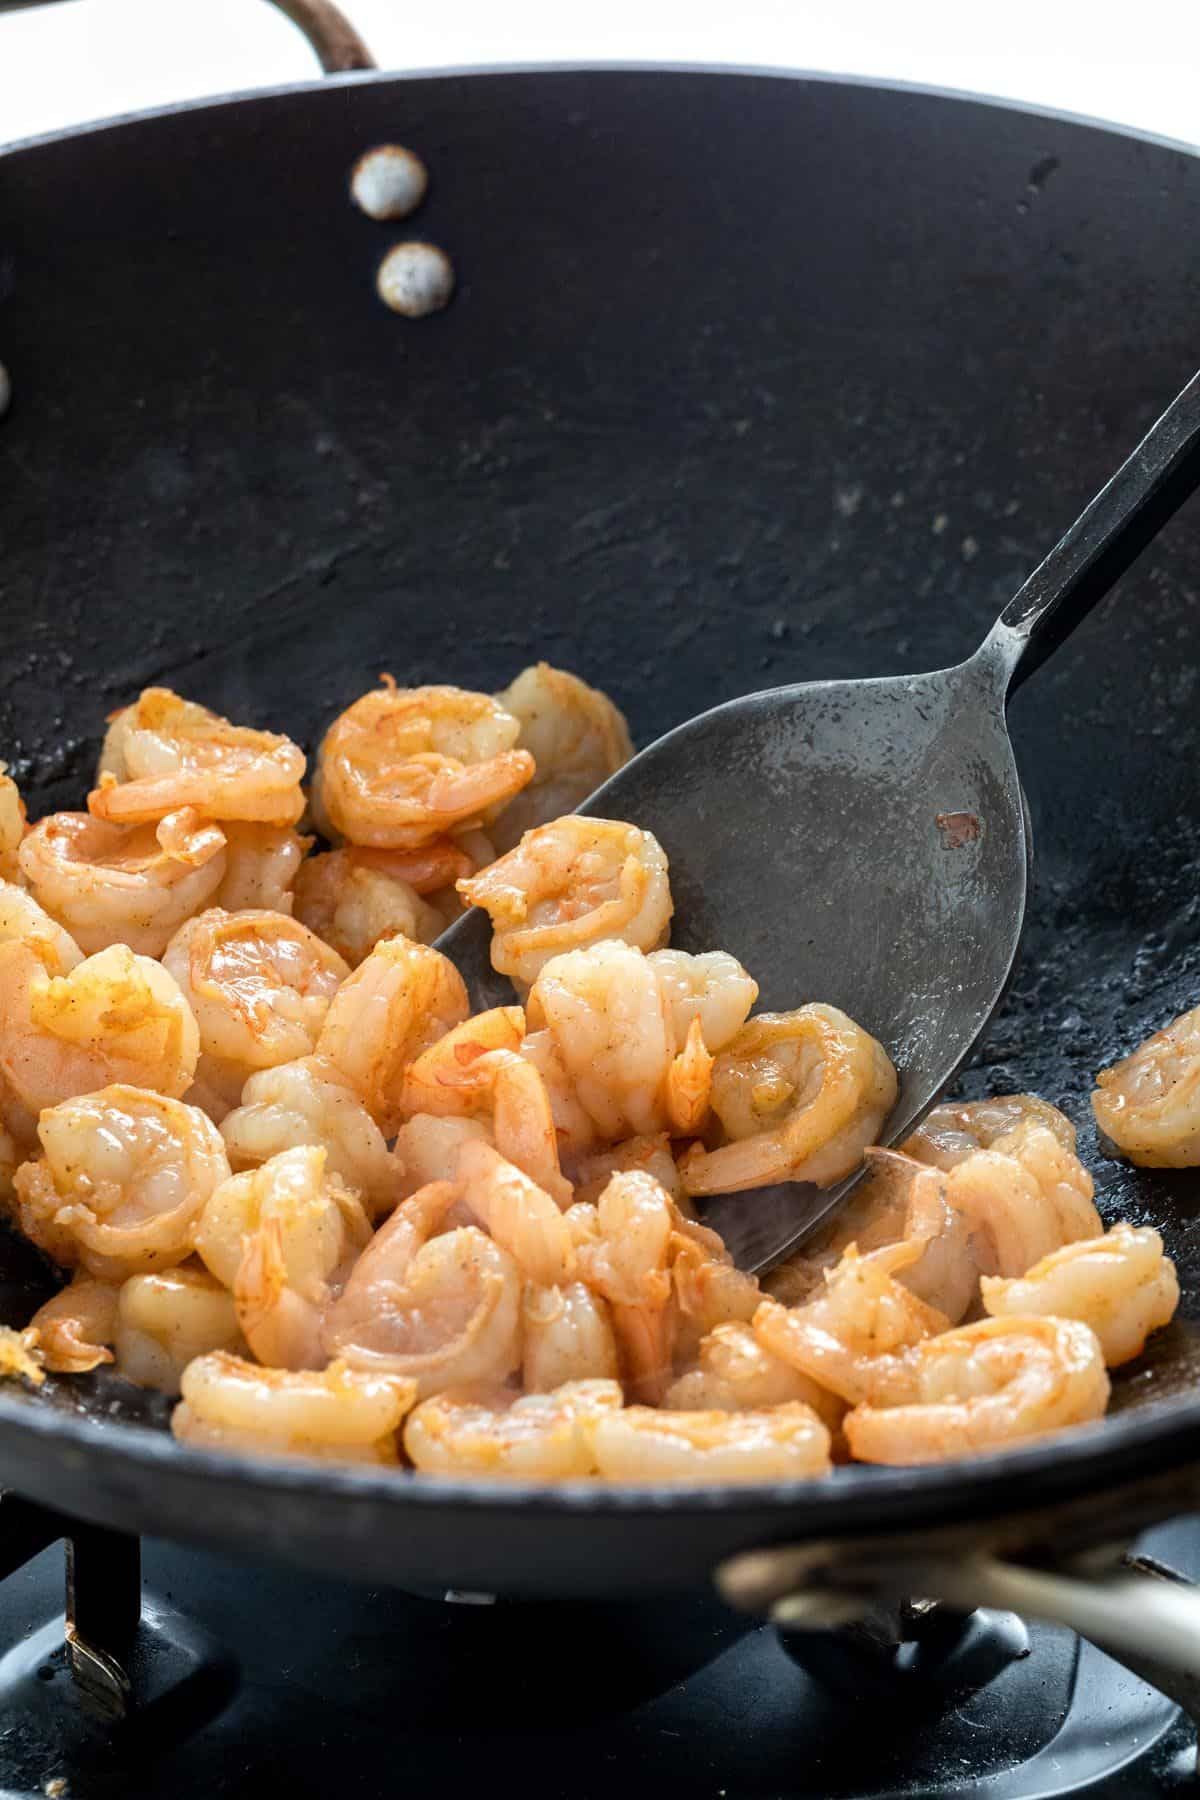 cooked pieces of shrimp in a pan